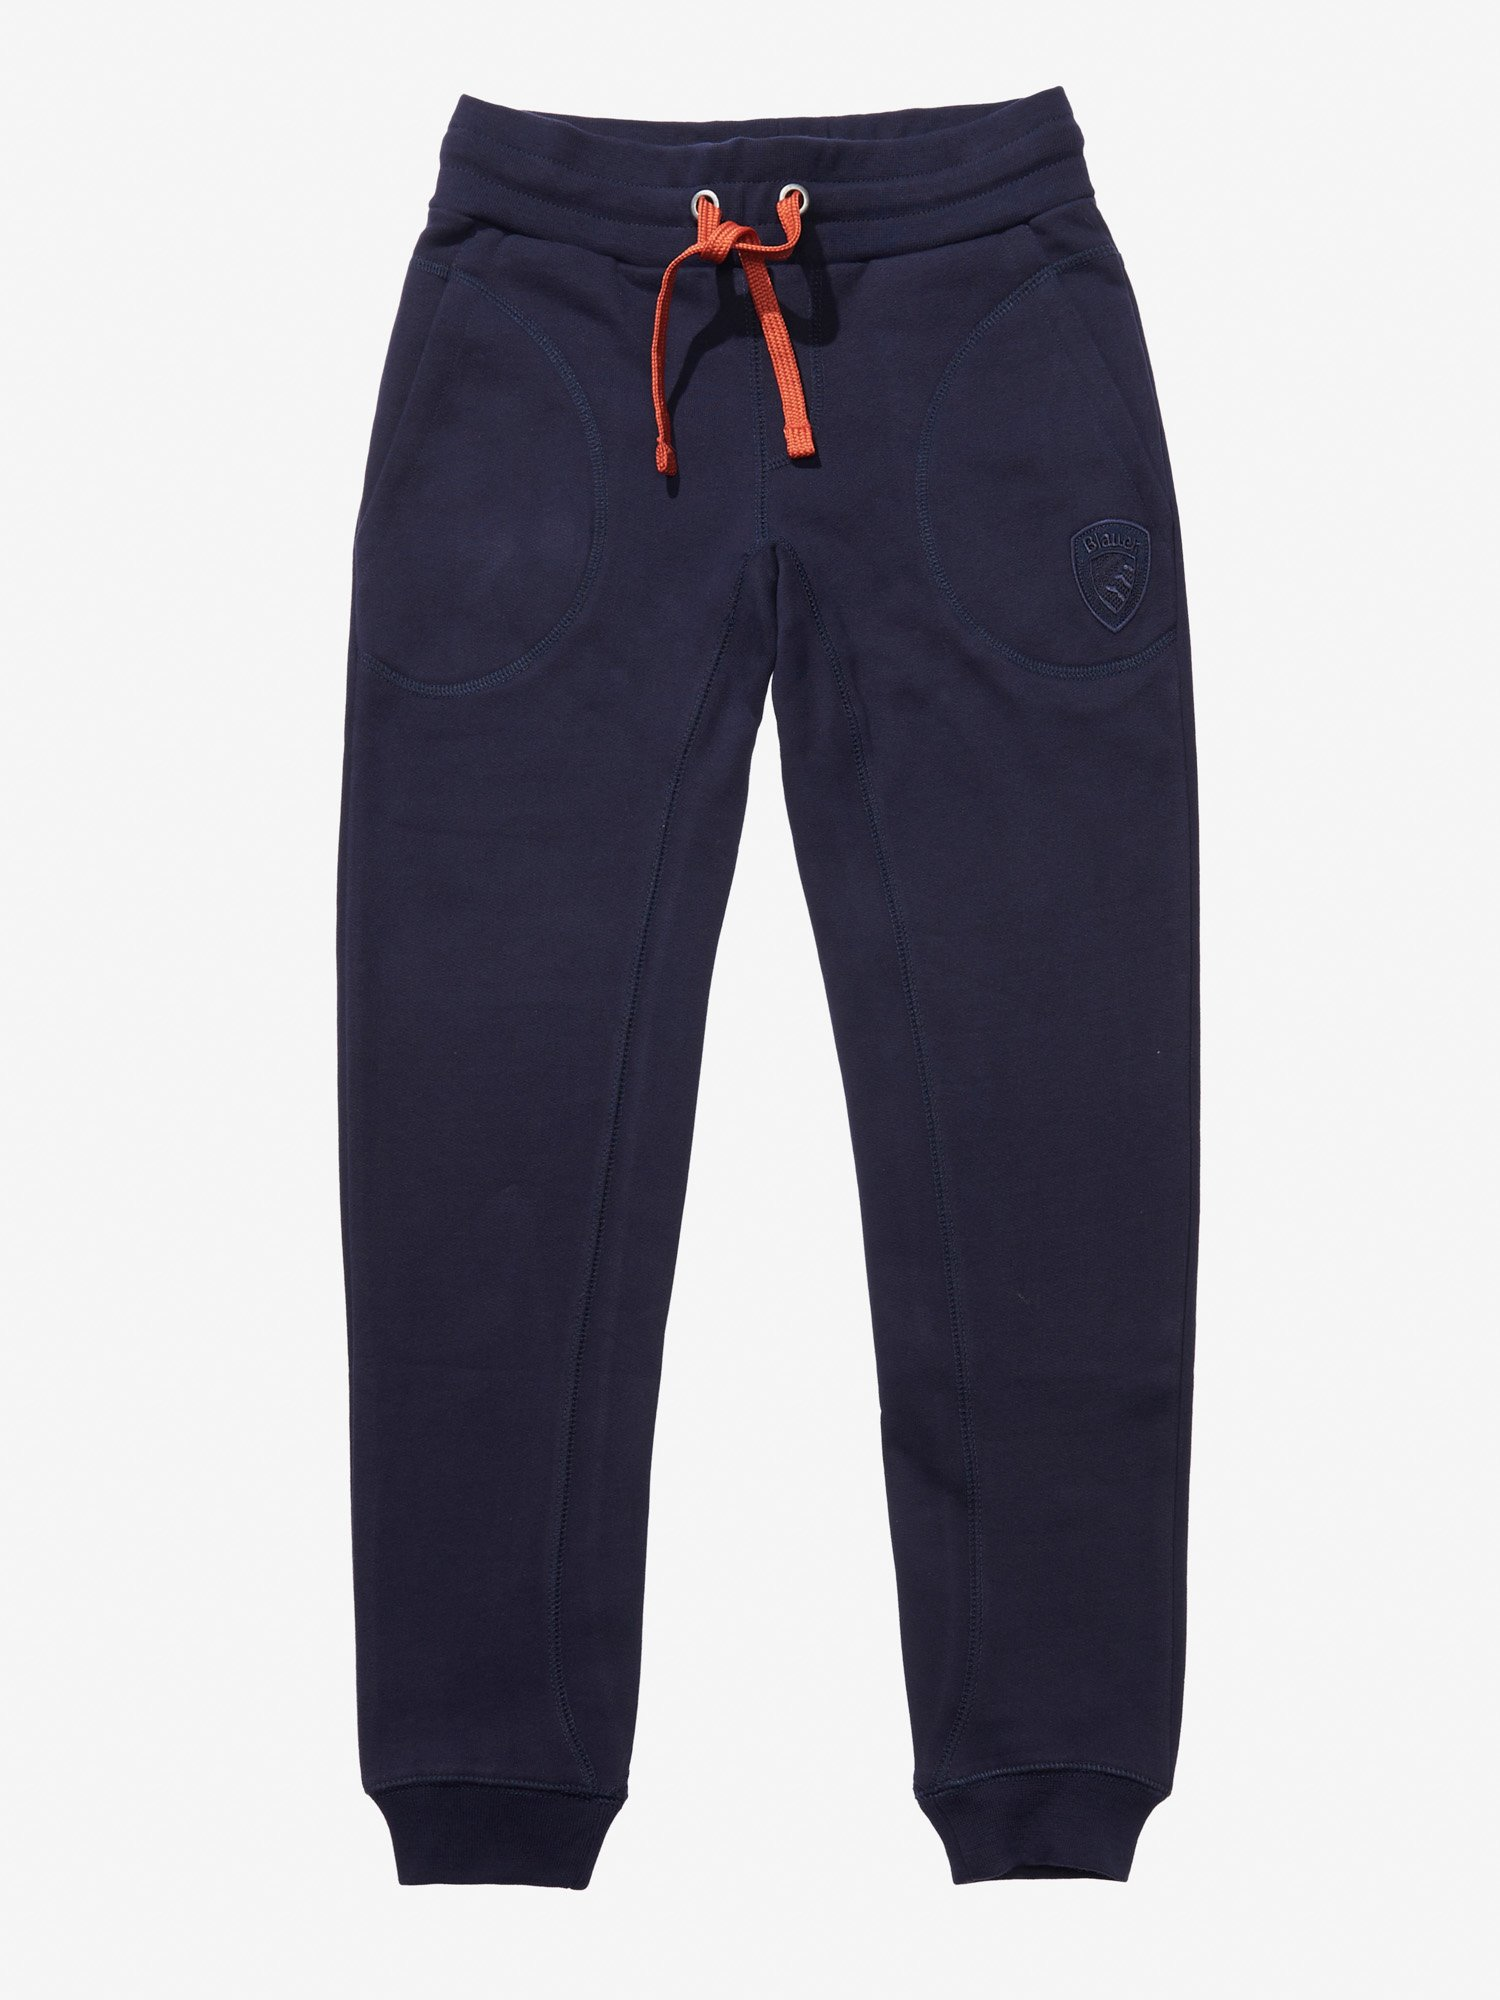 SWEATPANTS - Blauer